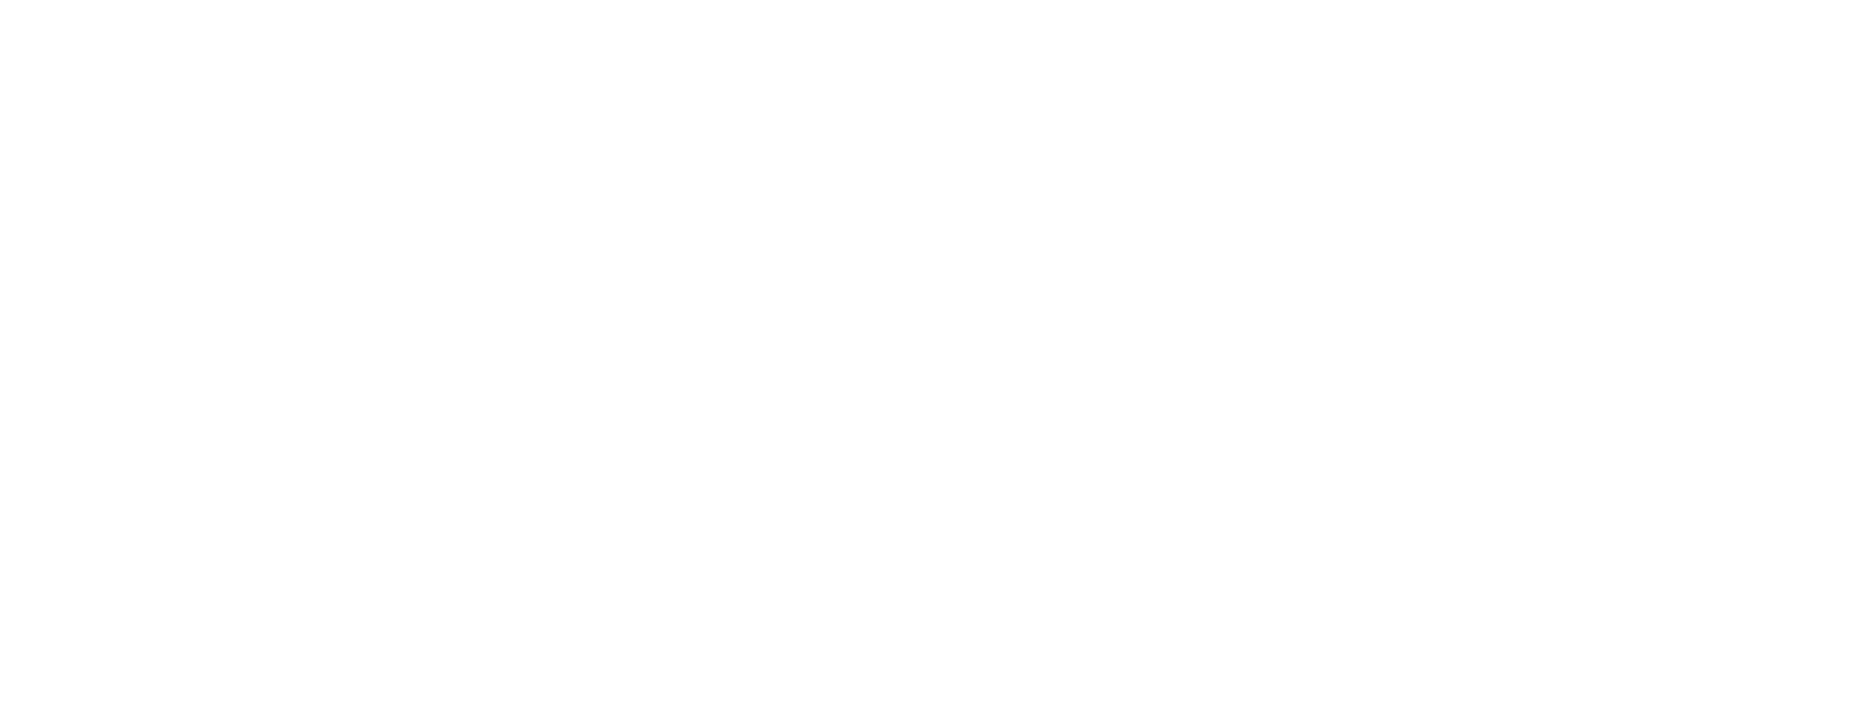 Favorite Guy Gifts One Color Horizontal Logo White on Clear Background - Find Gifts For Men